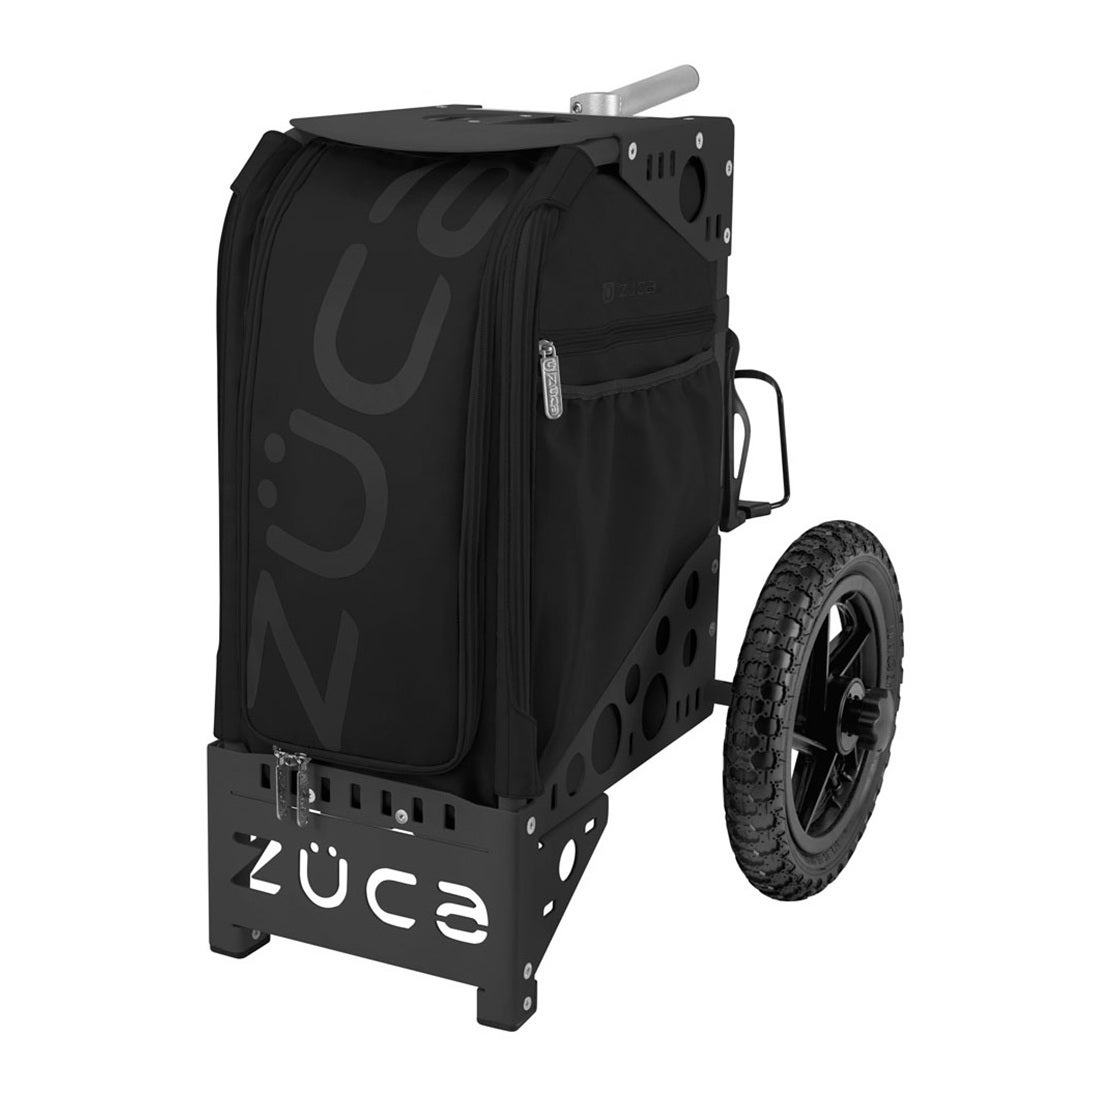 【SAC'S BAR】ズーカ ZUCA キャリーケース 1310 ALL-TERRAIN Covert/Black メンズ